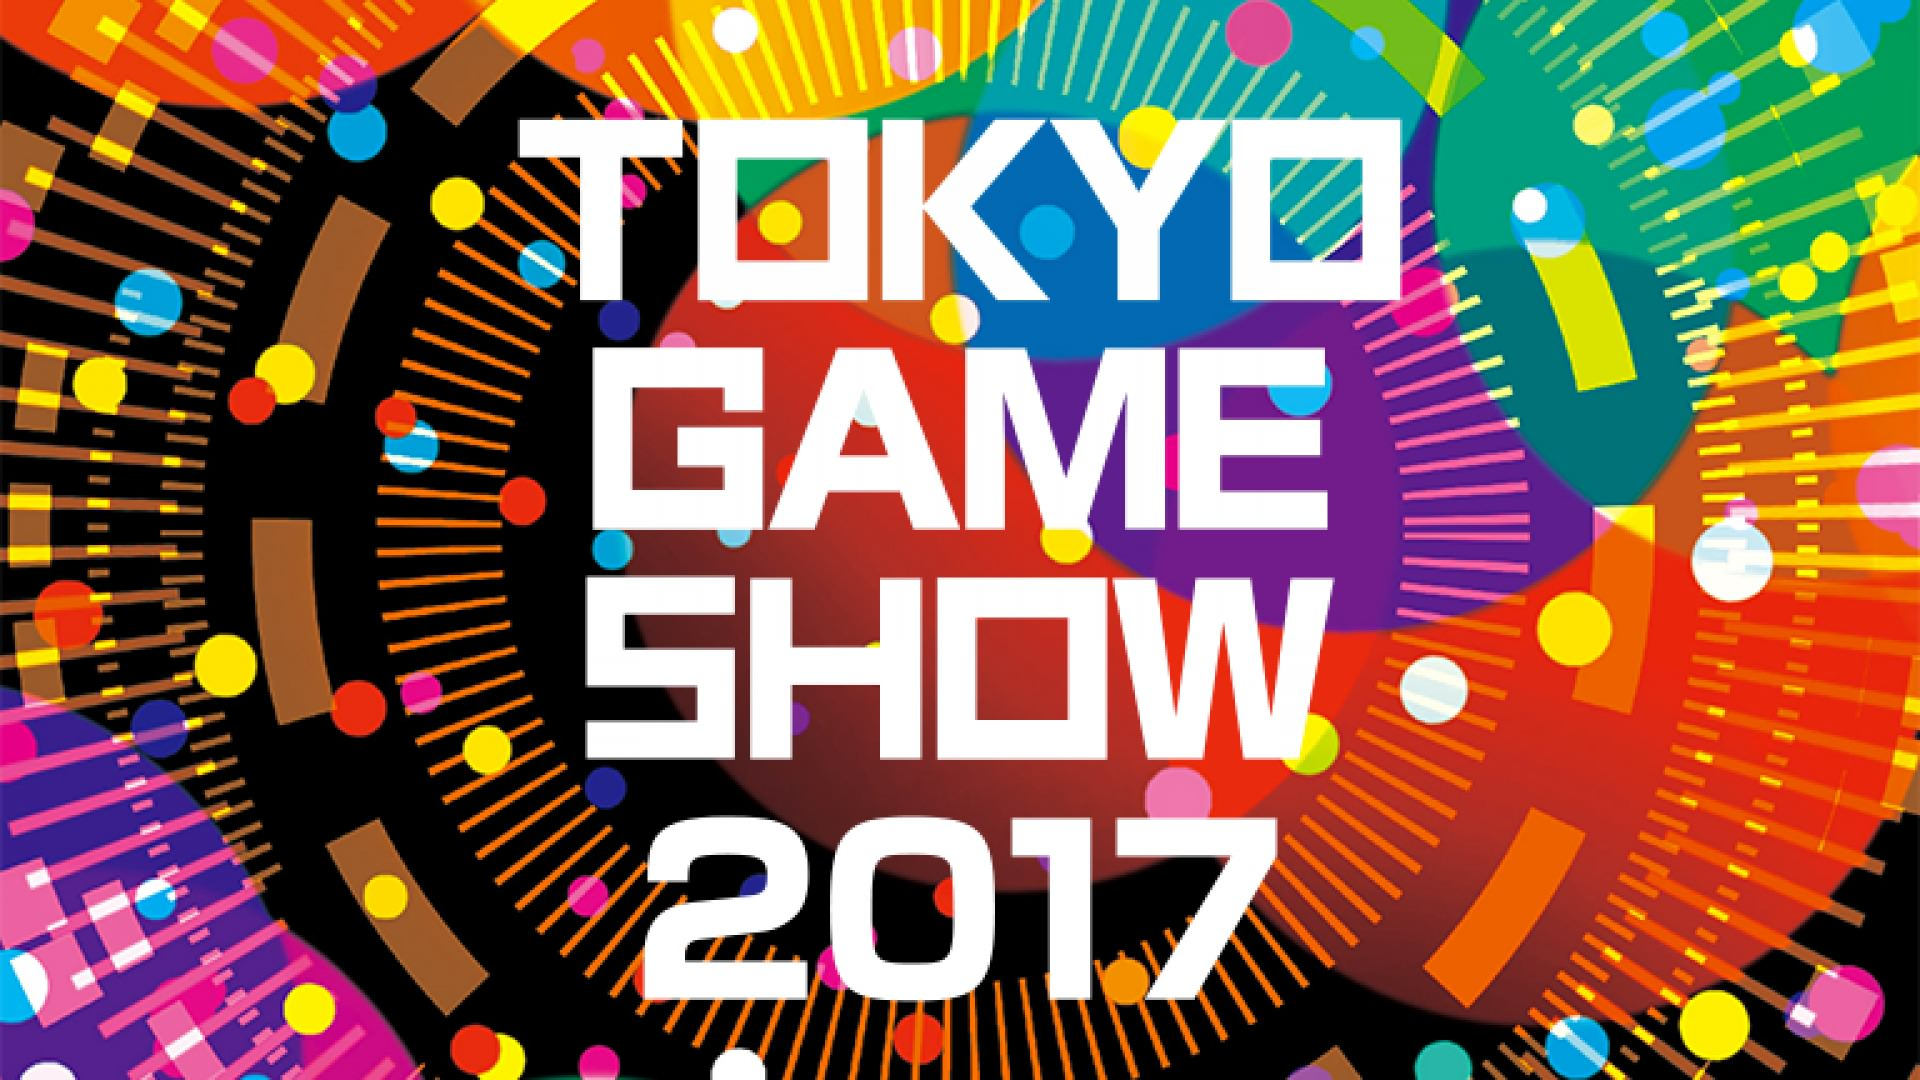 TGS 2017 - Tokyo Game Show 2017